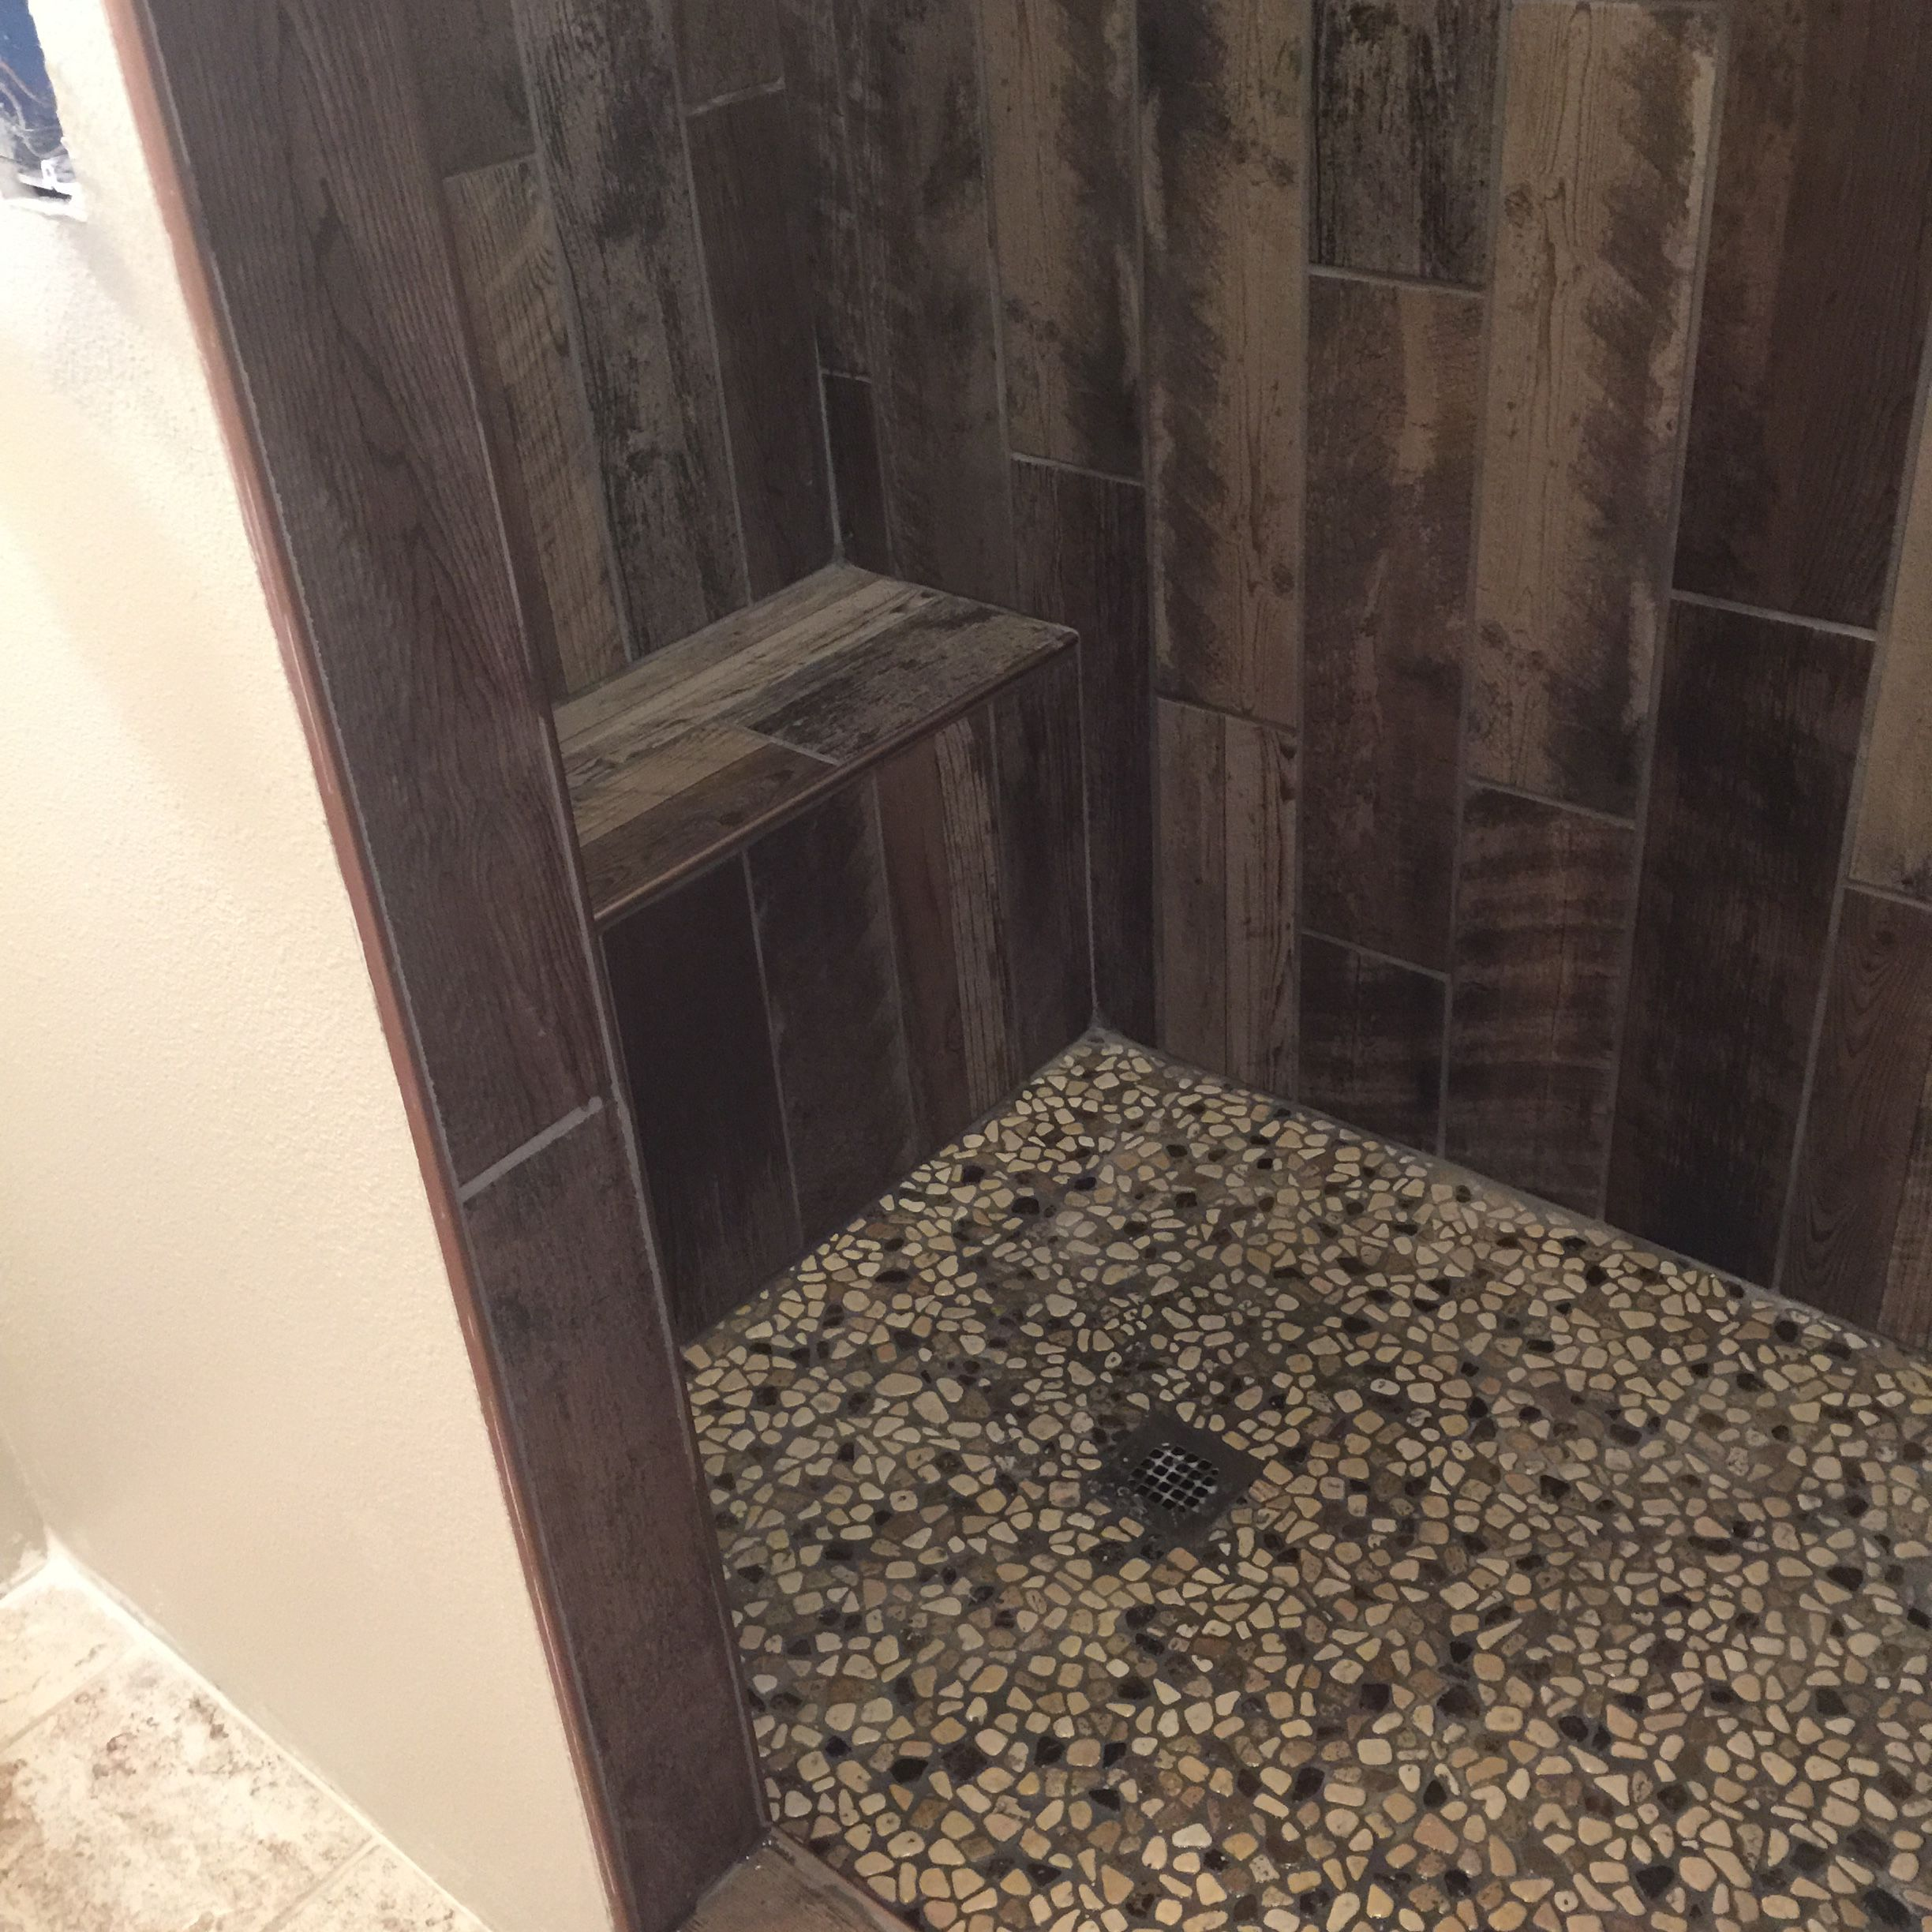 Wood Shower Floor Barn Wood Tile Shower With Pebbles On The Floor Outdoor